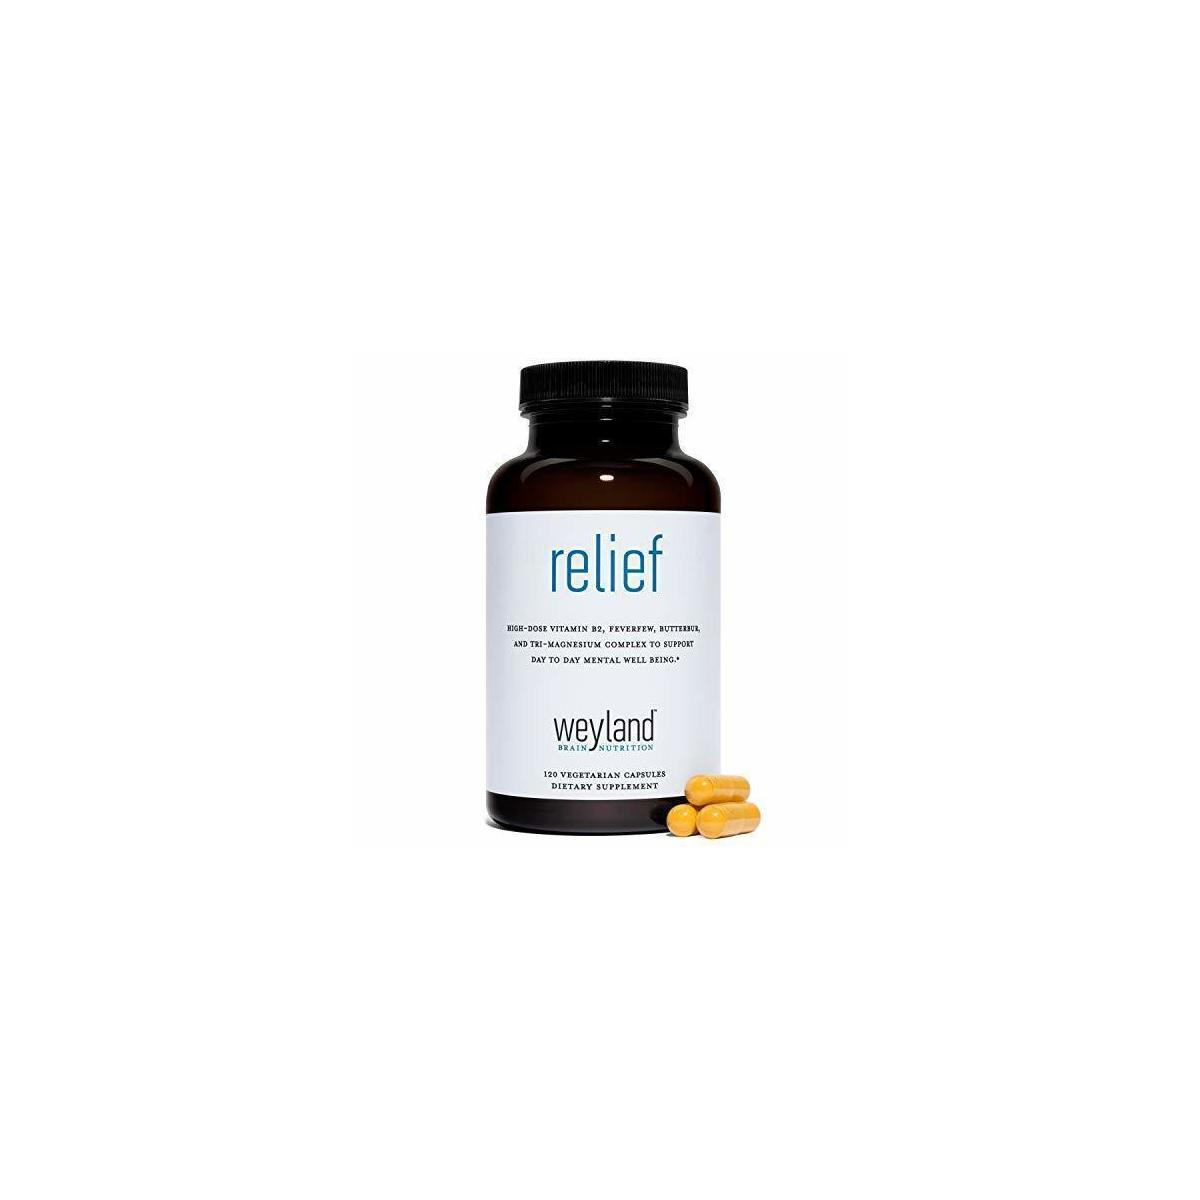 Relief: Made for Migraines